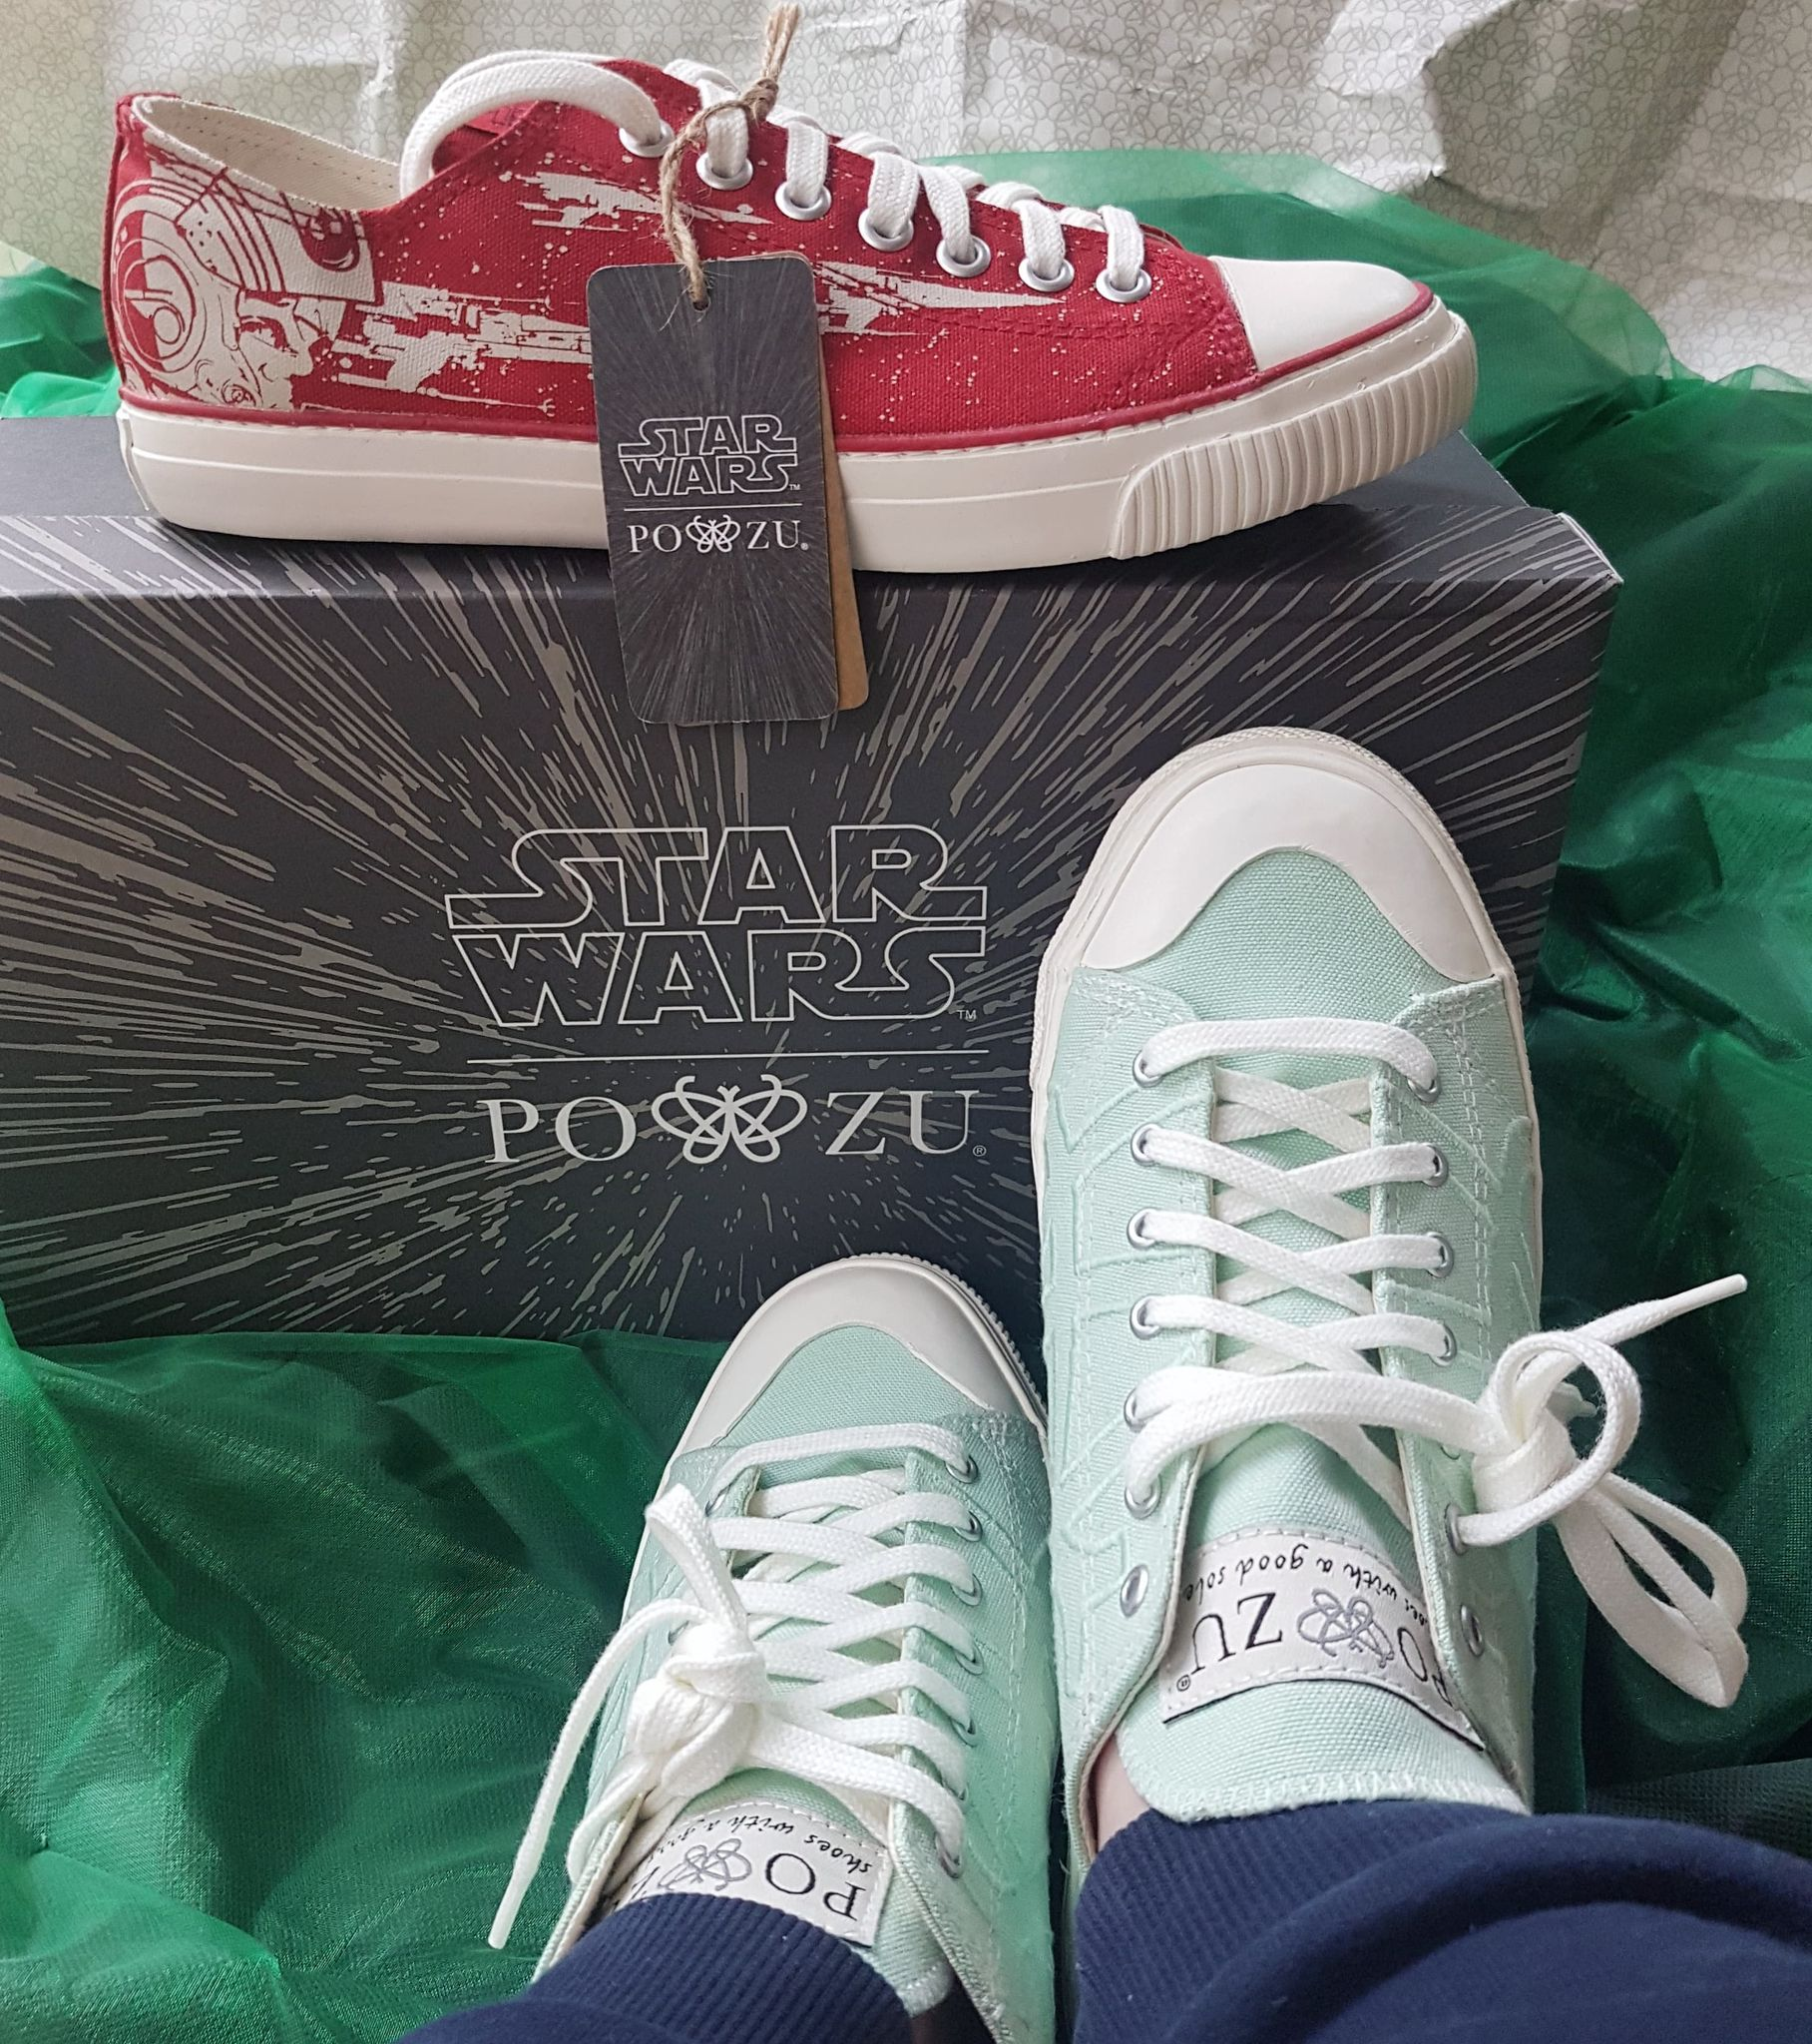 red Star Wars shoes and mint green shoes with white laces